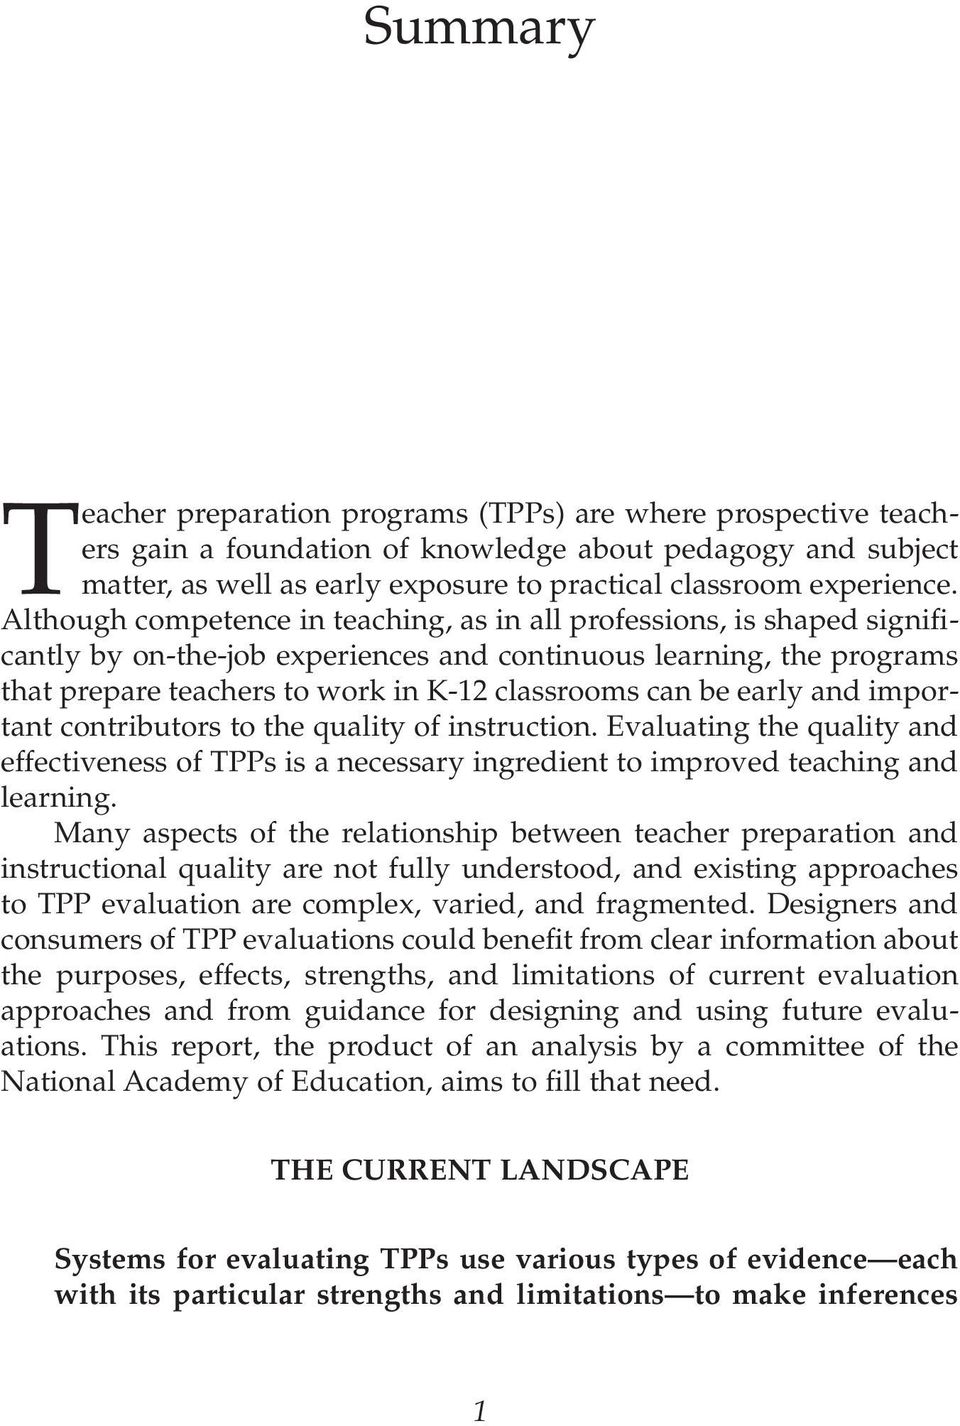 Although competence in teaching, as in all professions, is shaped significantly by on-the-job experiences and continuous learning, the programs that prepare teachers to work in K-12 classrooms can be